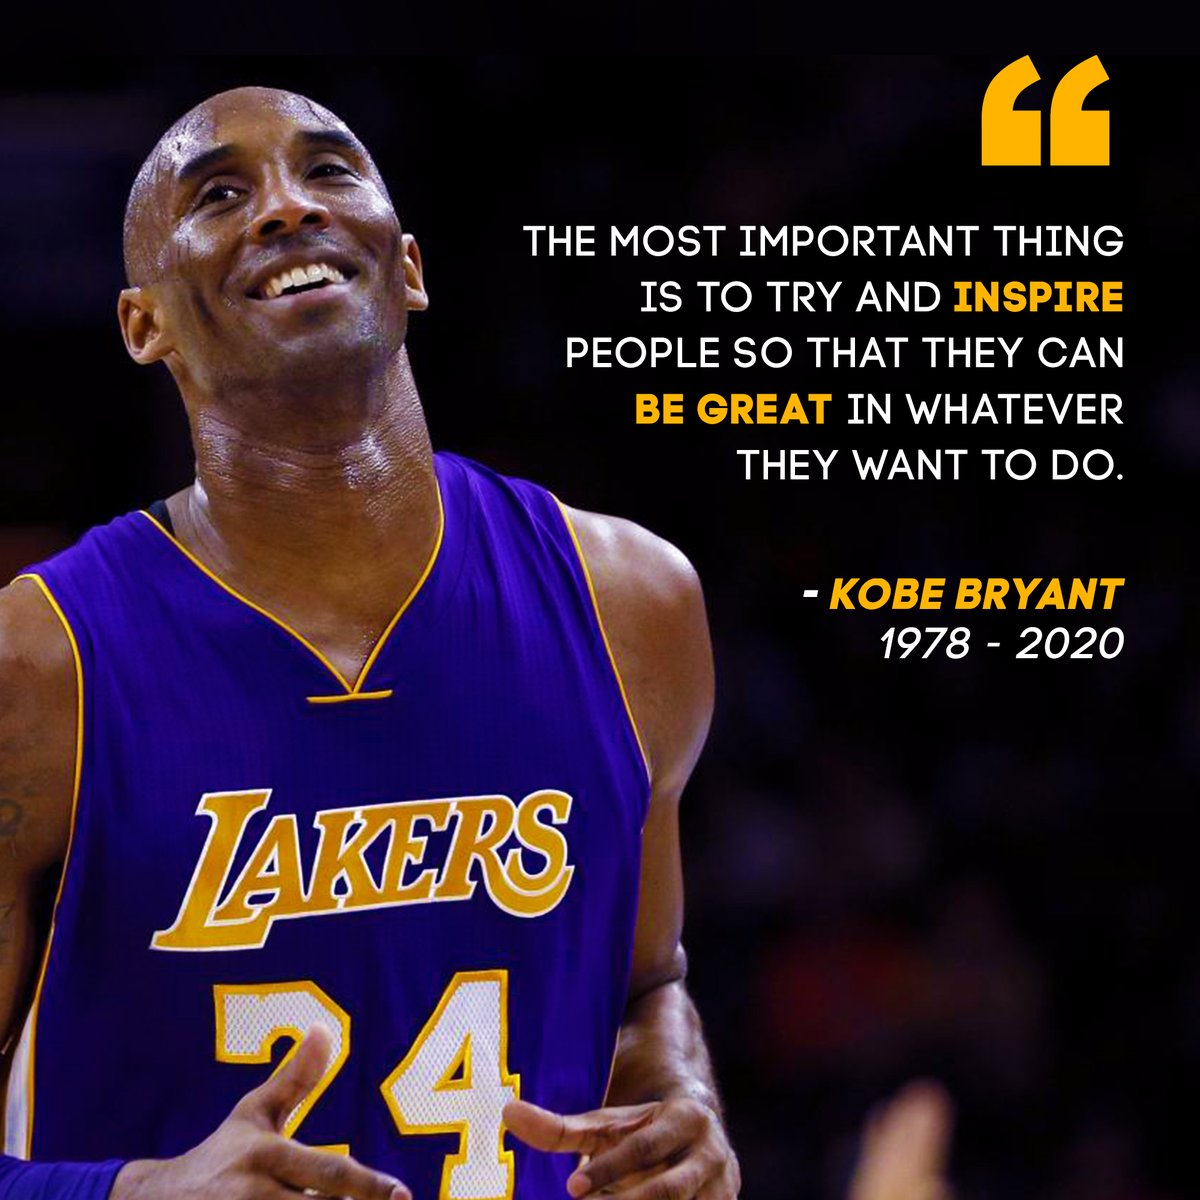 An inspiration to us all. Rest In Peace #KobeBryant<br>http://pic.twitter.com/Lkp31ZpCmF